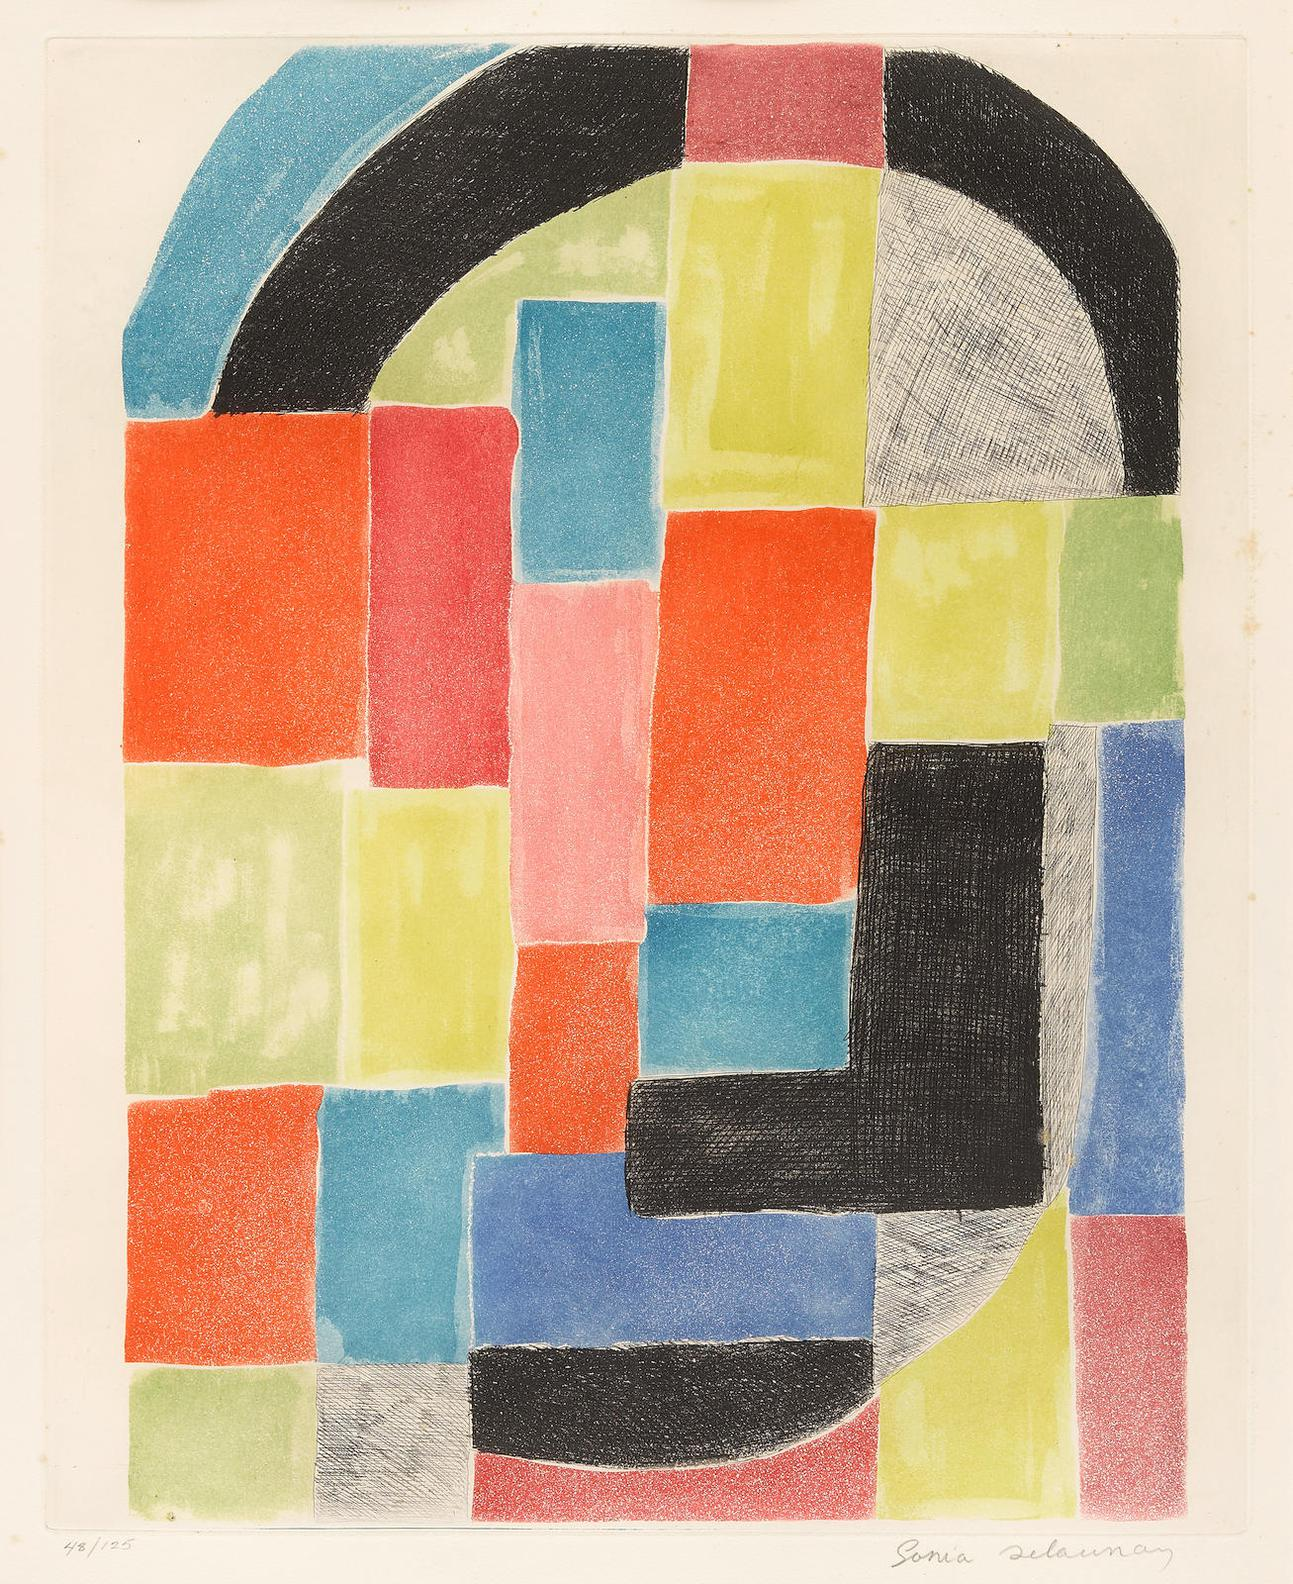 Sonia Delaunay-Composition-1970